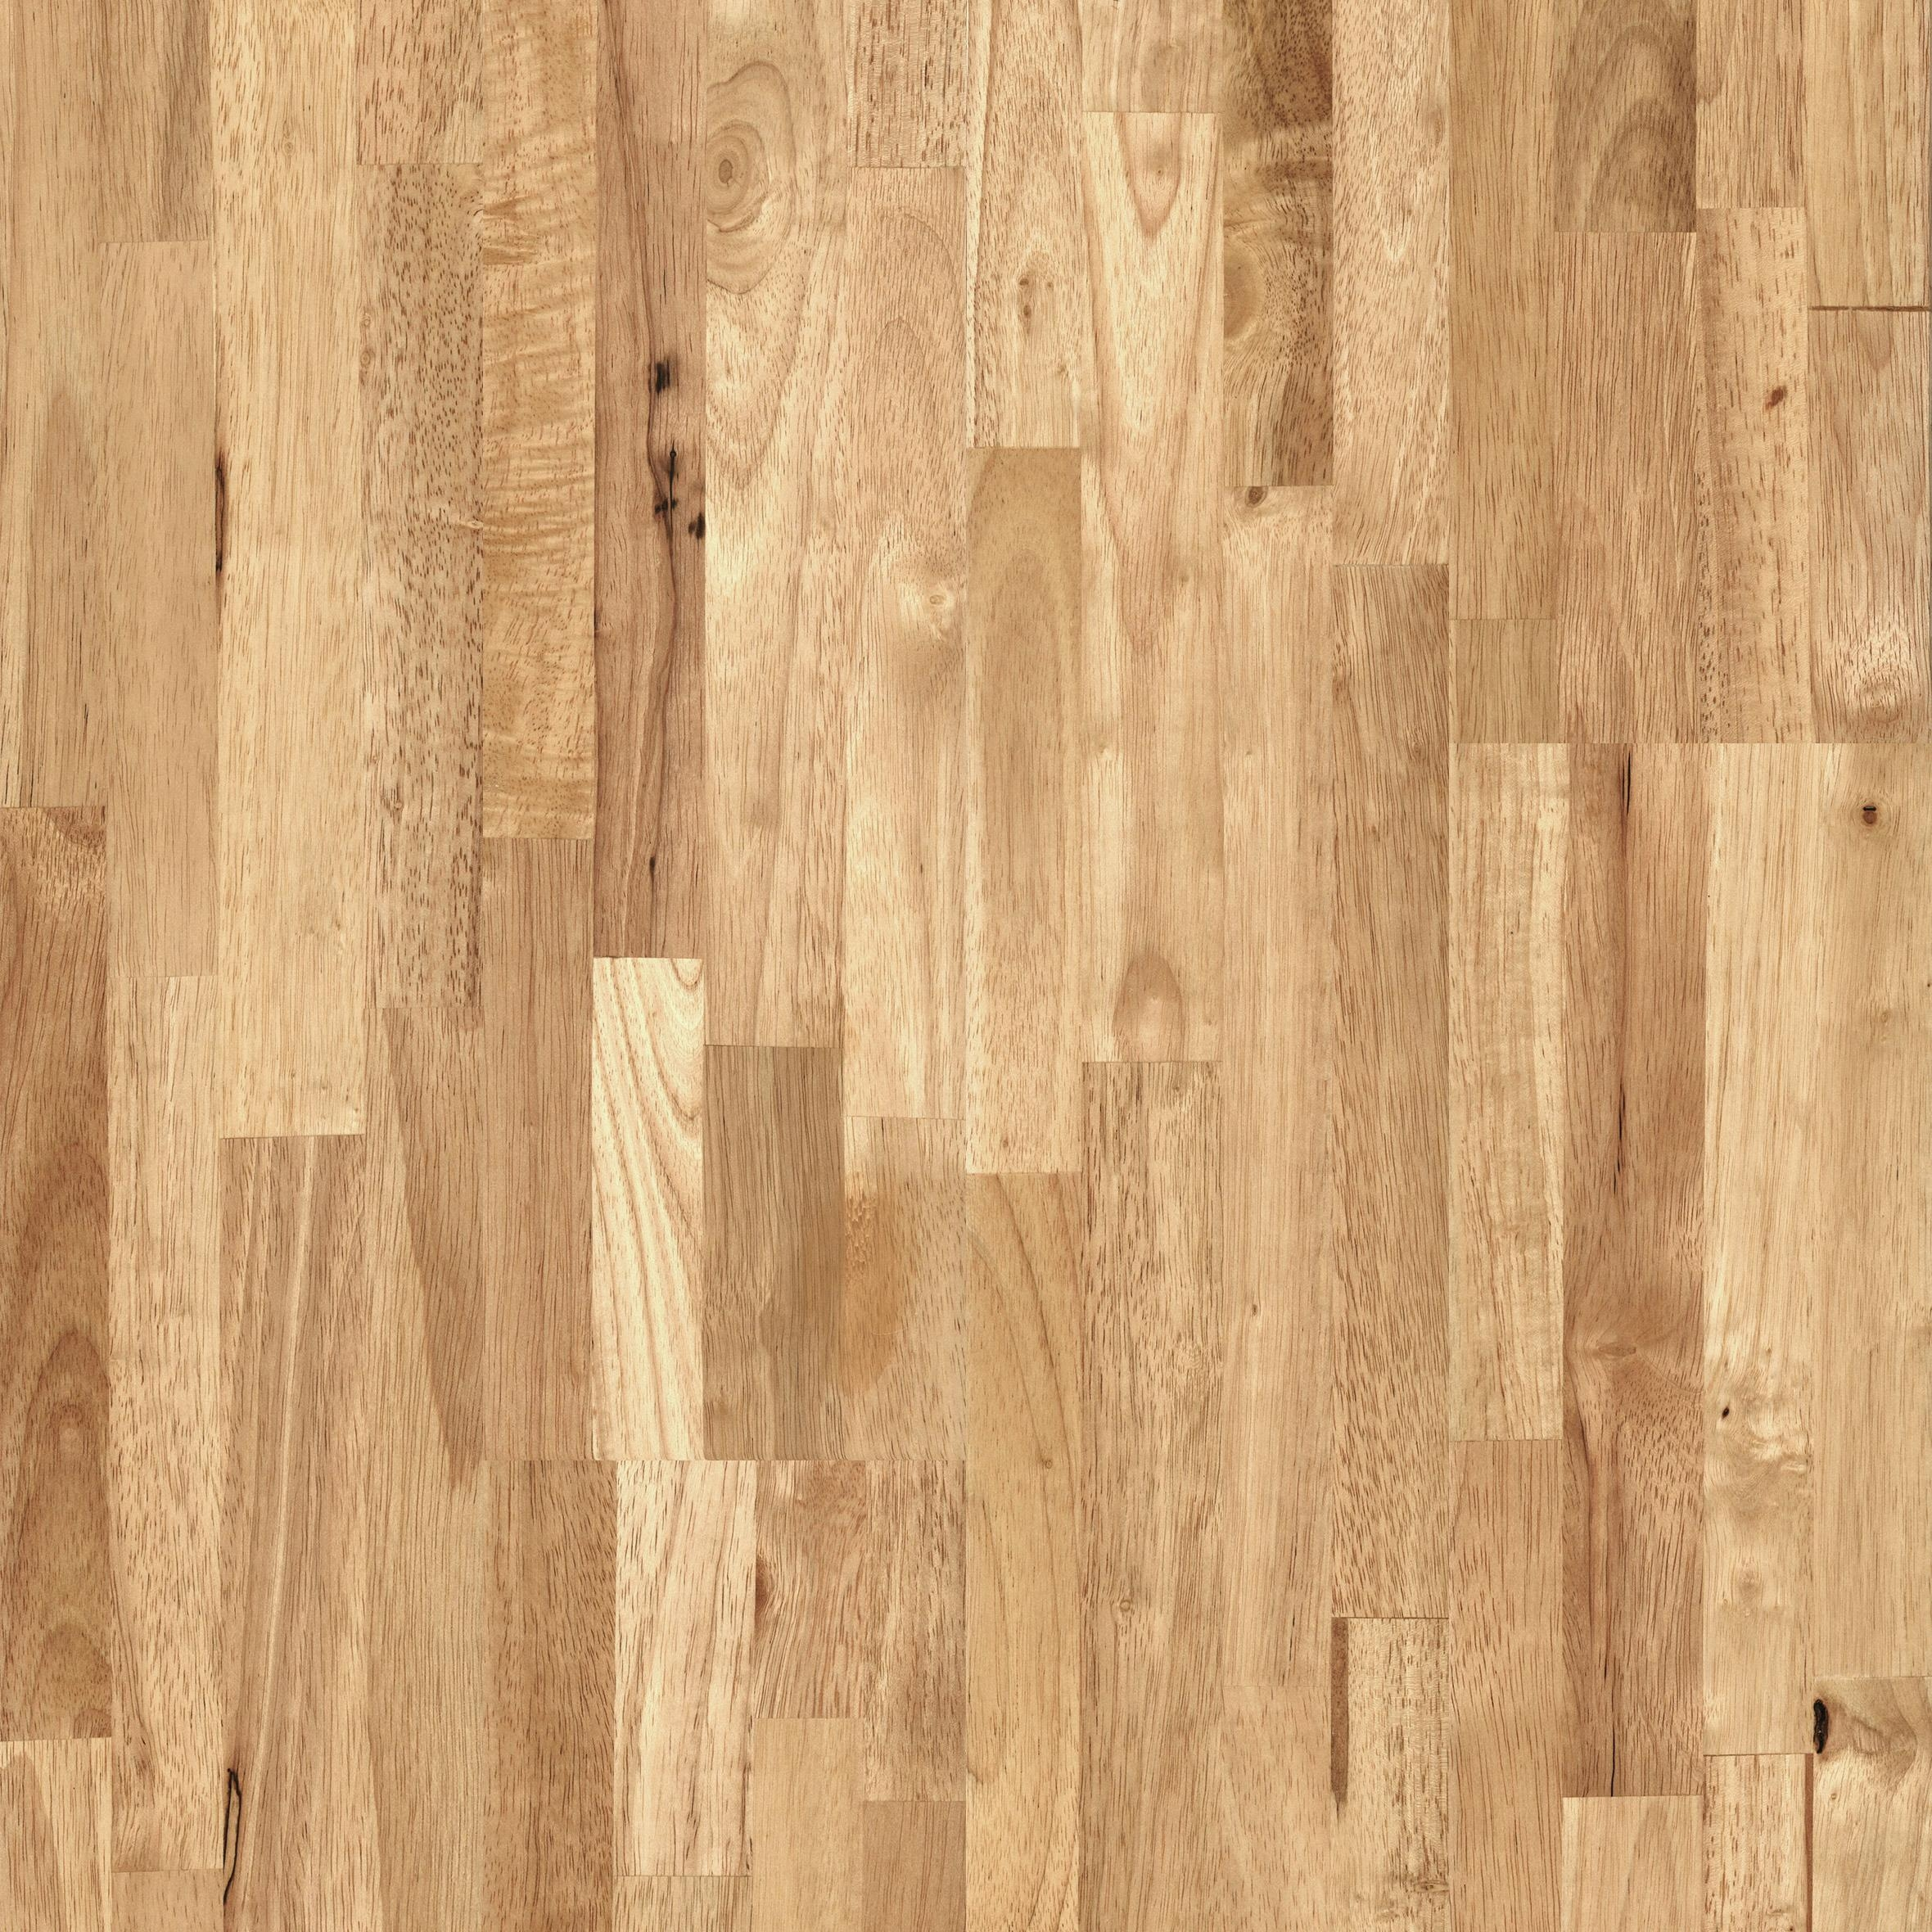 Hevea Solid Wood Flooring